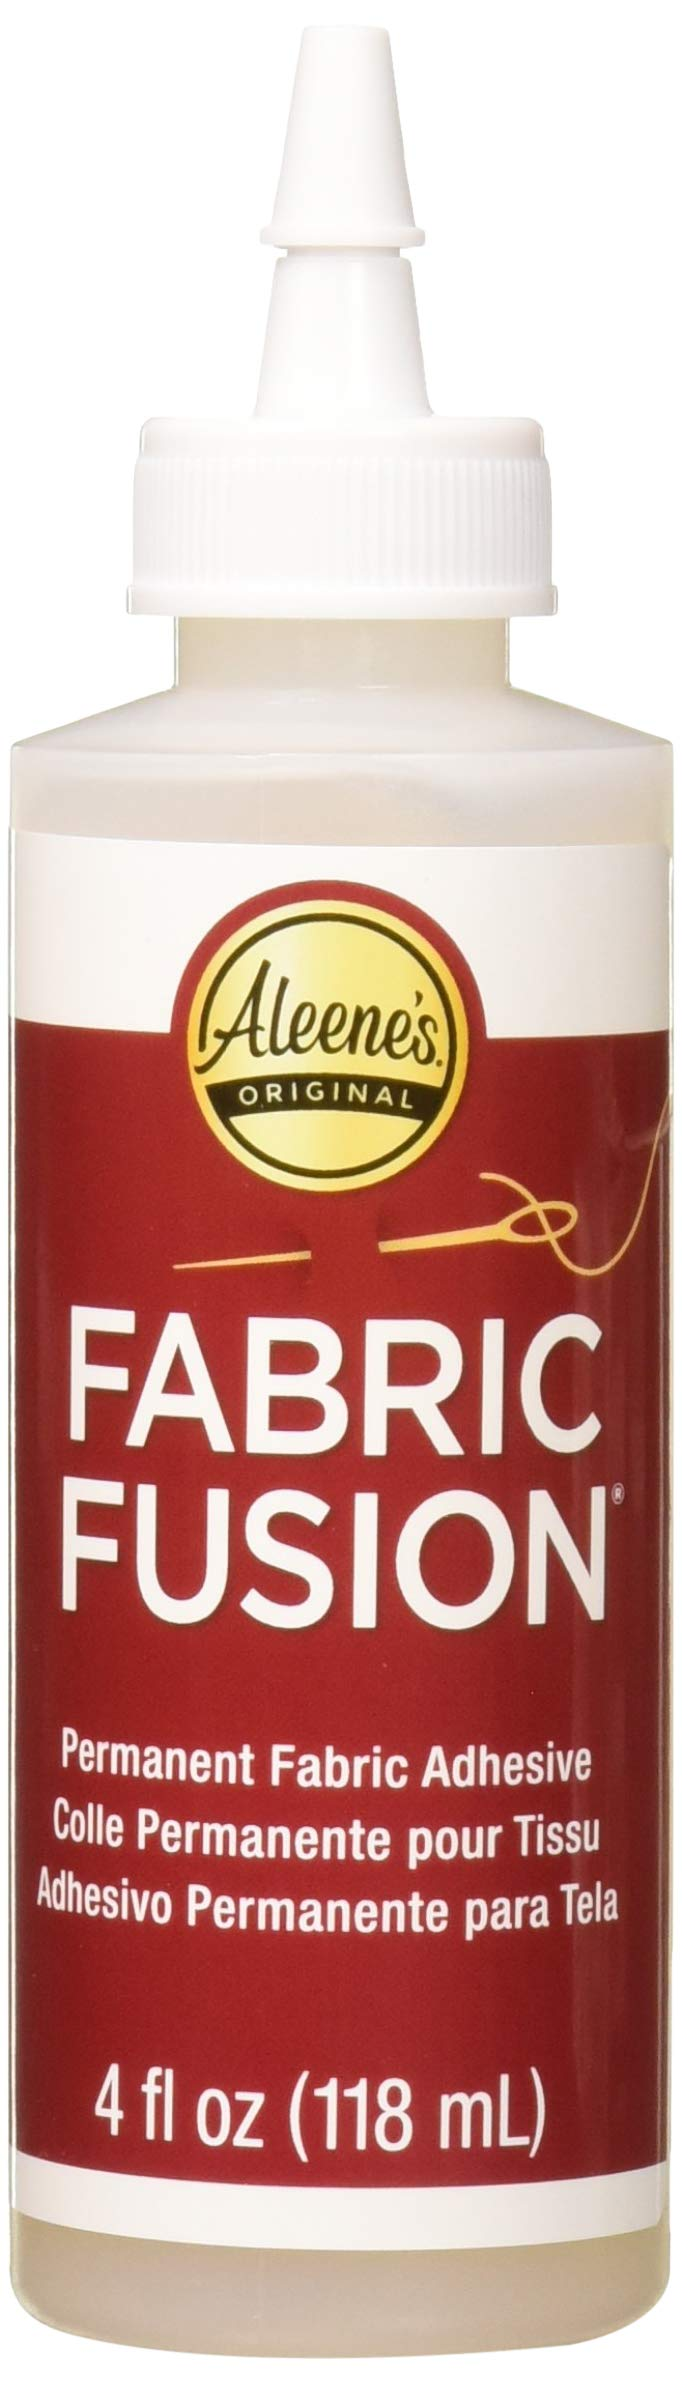 Aleene's Fabric Fusion Permanent Fabric Adhesive 3-Pack, 4 oz. by Aleene's